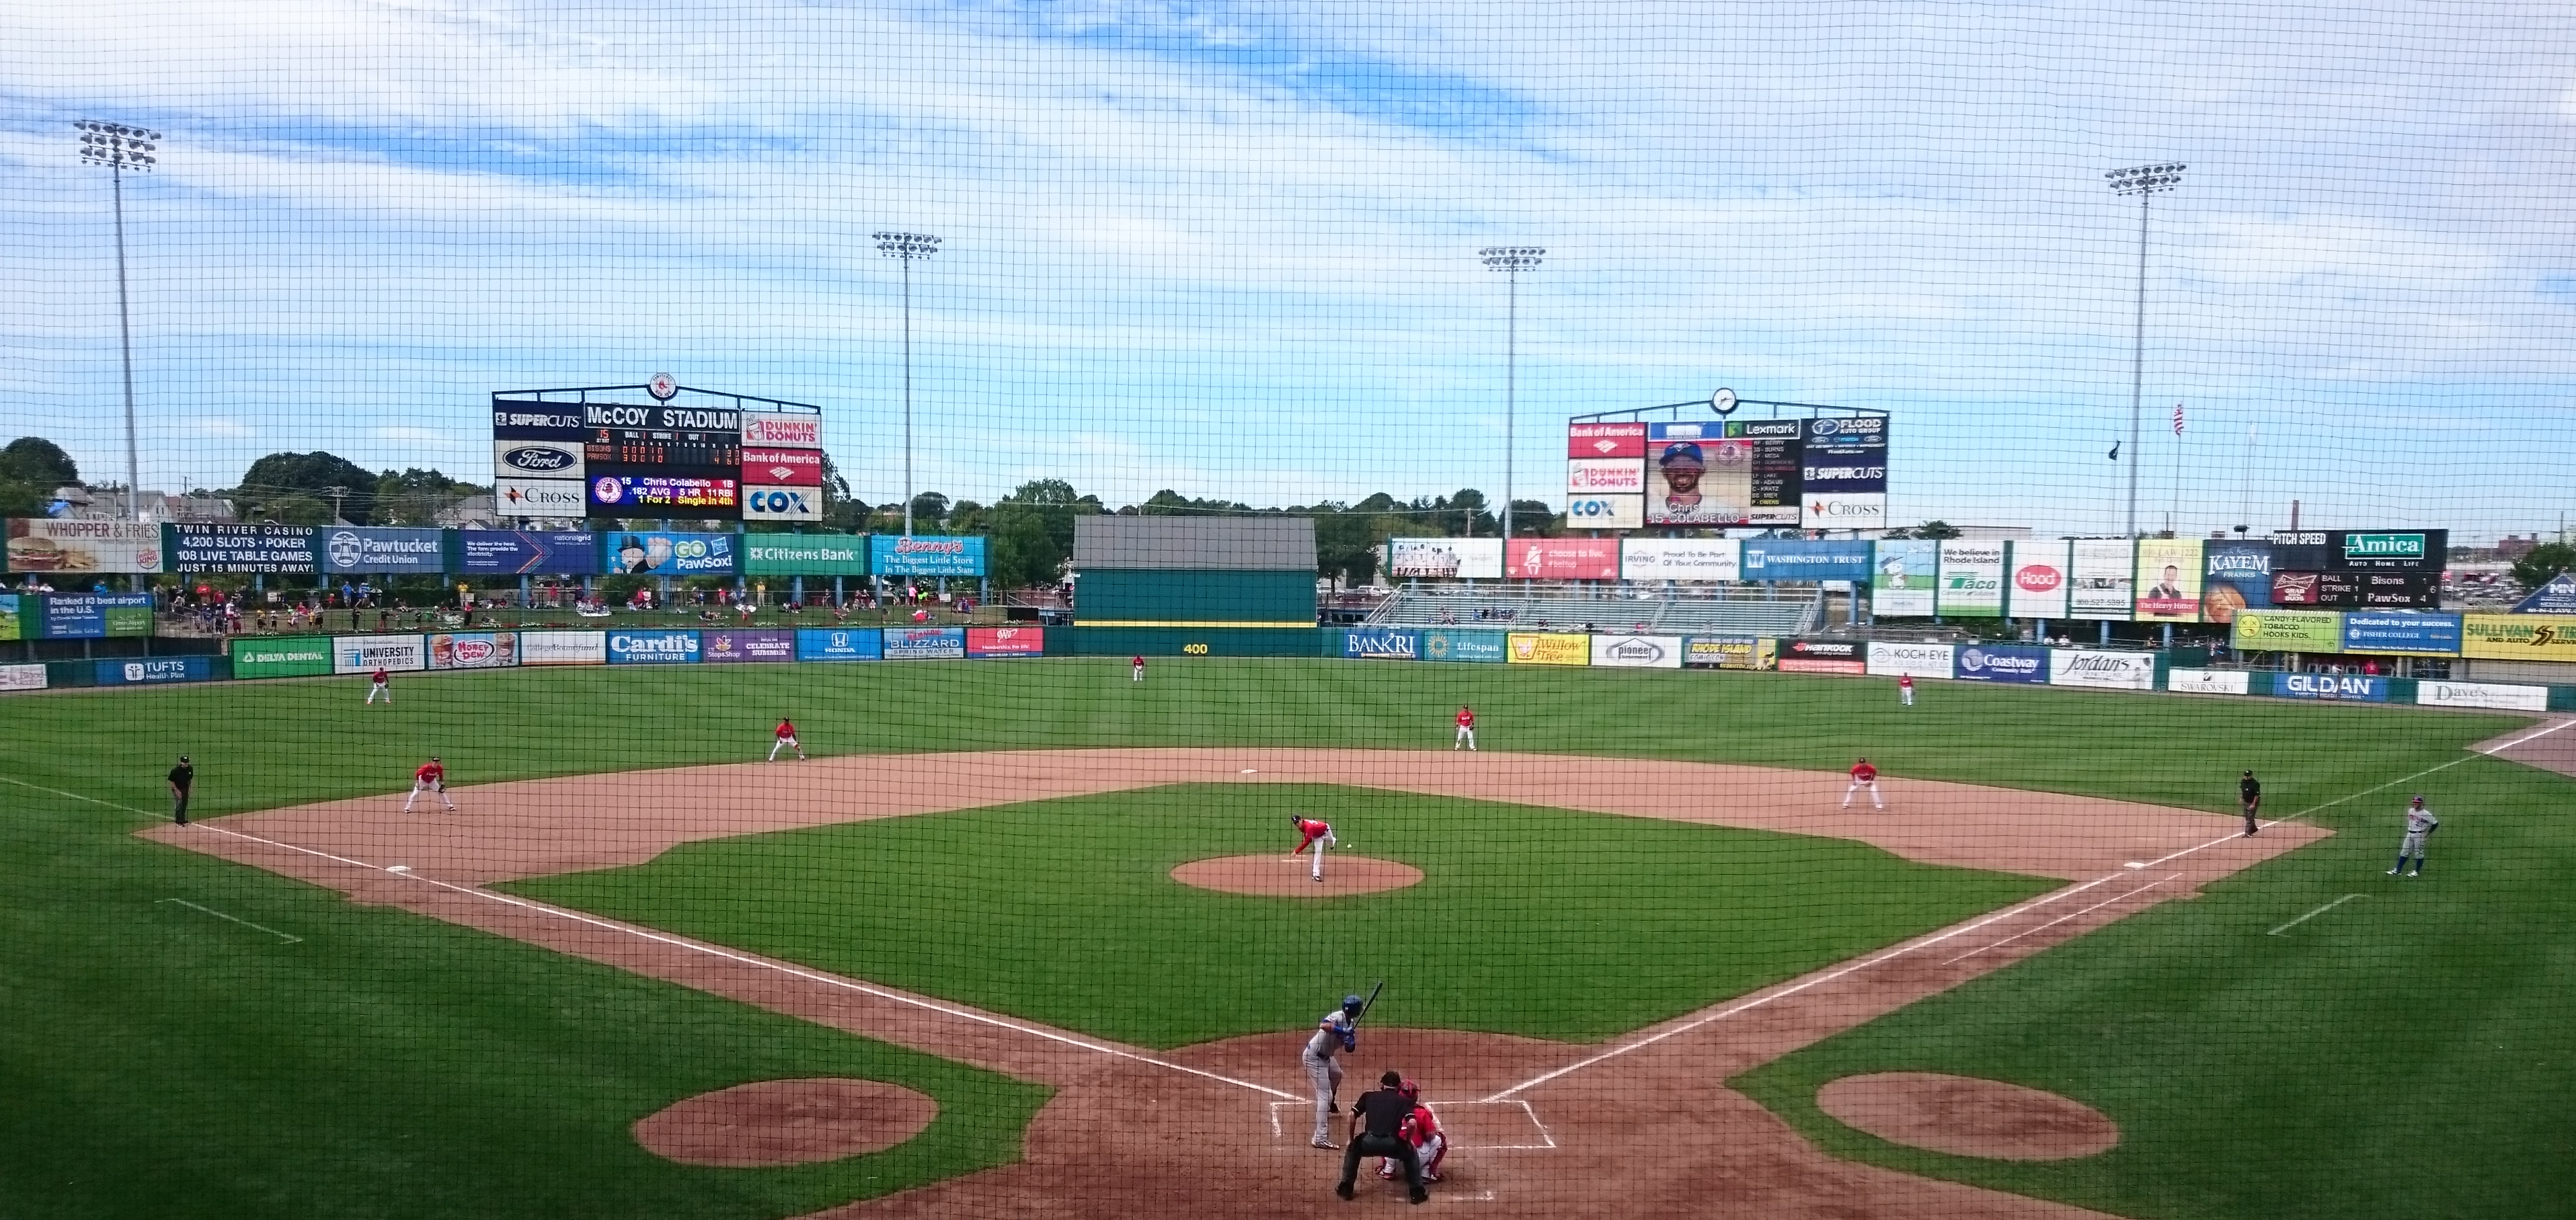 https://assets.sourcemedia.com/1c/e4/88d714ed4e20be03d6ca086e4079/pawtucket-ri-mccoy-stadium.png